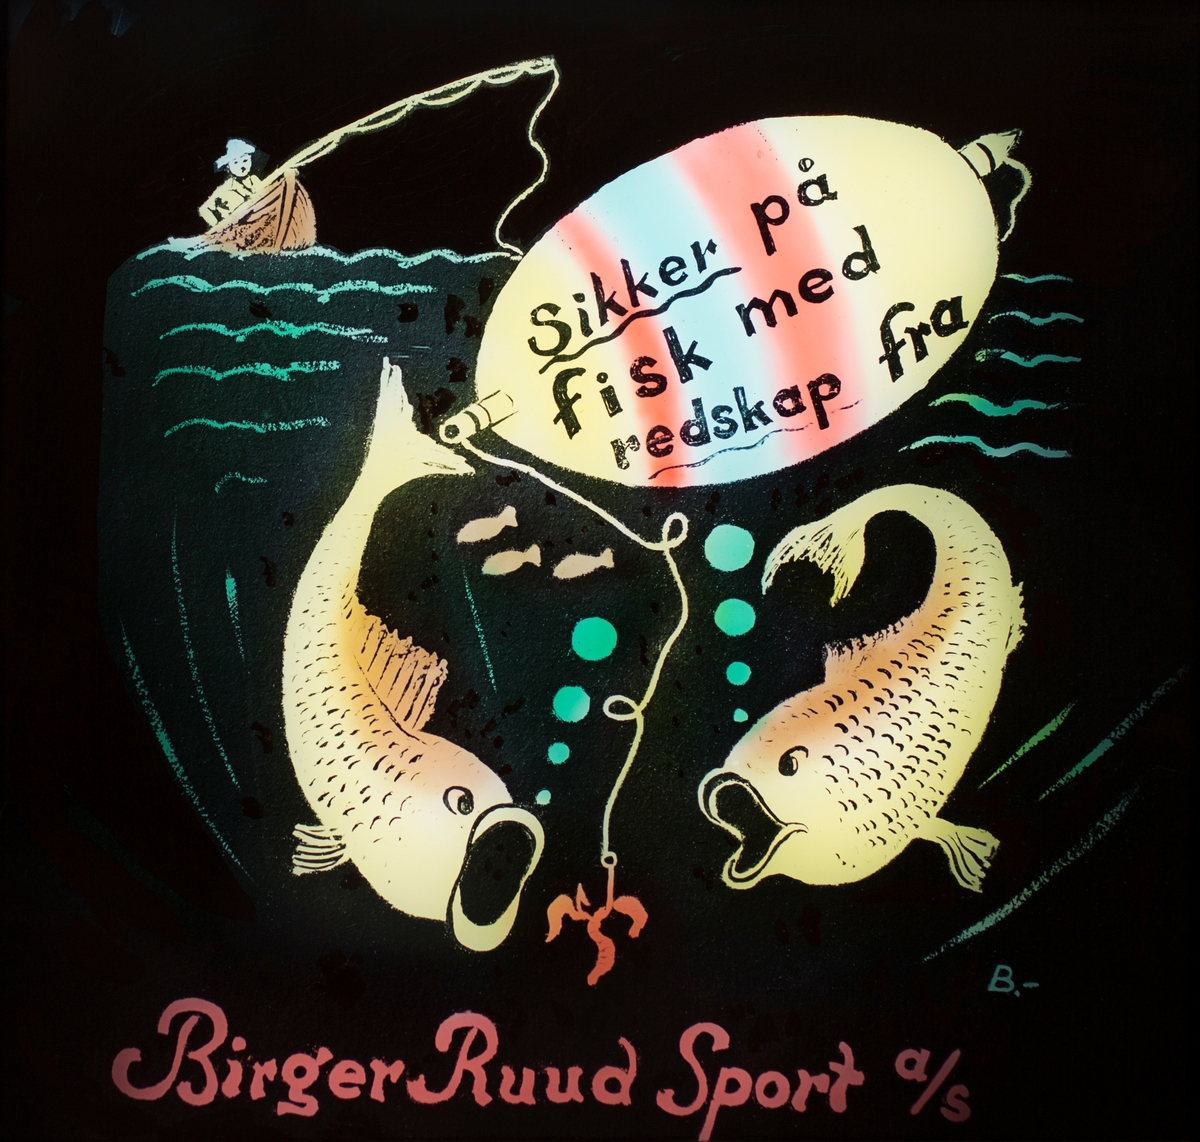 Slides promoting Birger Ruud's sports shop